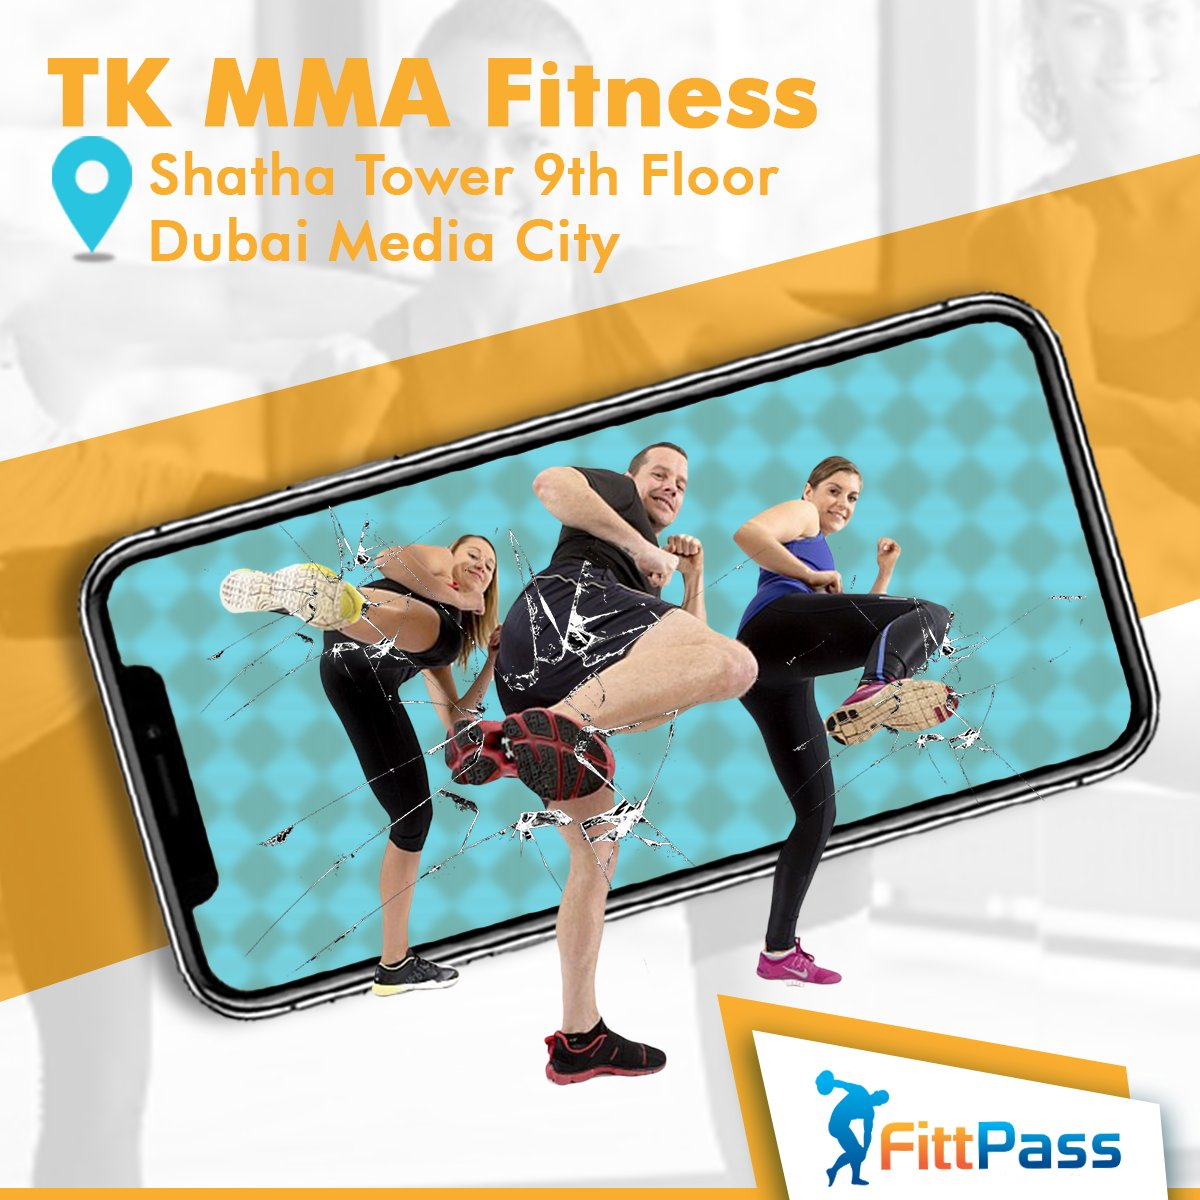 Looking for a gym that has it all? Check out @TKMMAFIT which gives you access to the gym, pool, combat classes, bootcamp and yoga! Save 15% only on http://FittPass.com  => https://bit.ly/39bIHEn   #TKMMAFitness #TamKhan #FittPass